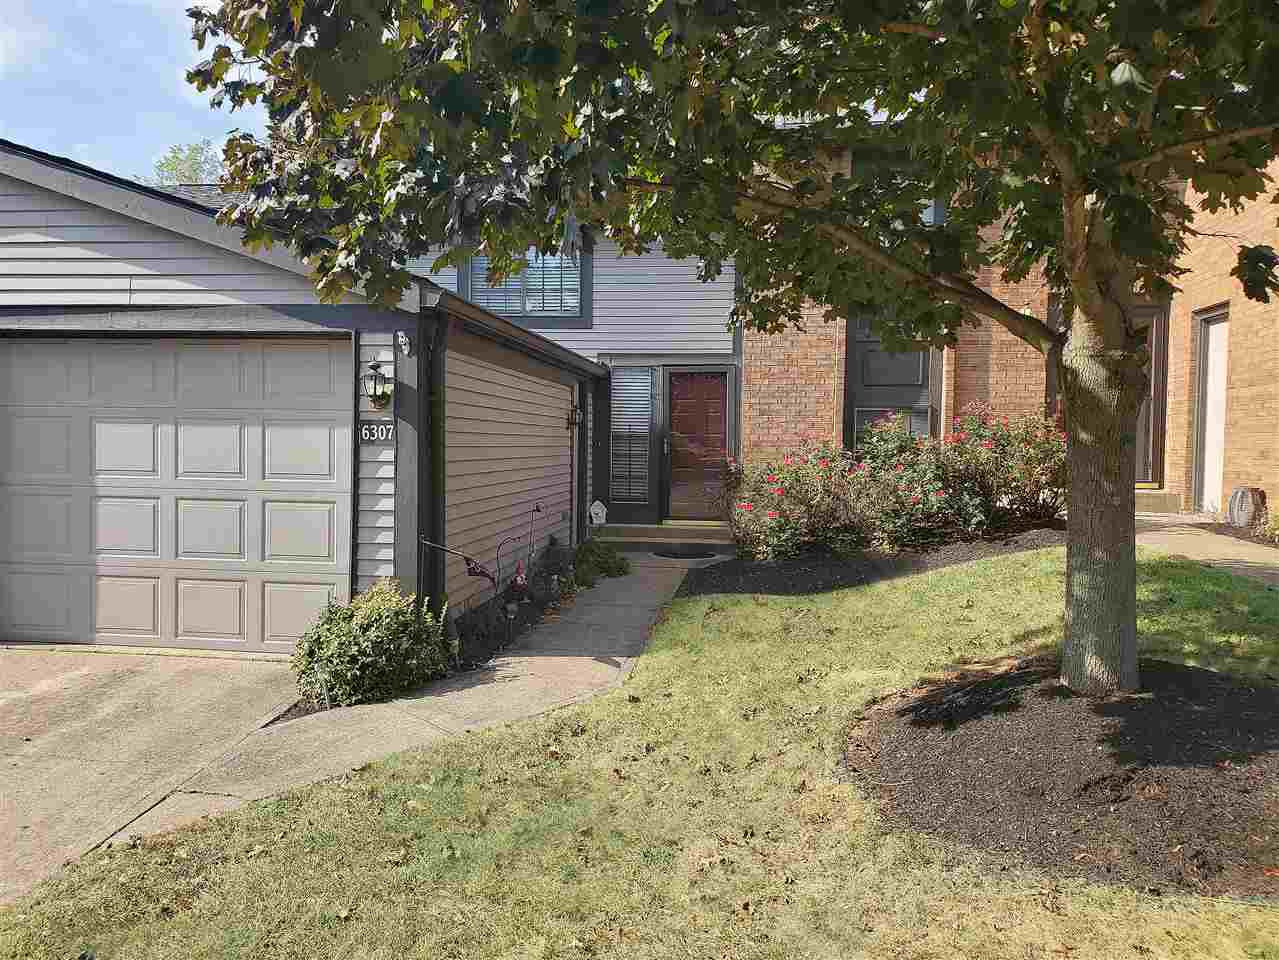 Photo 2 for 6307 Cliffside Dr Florence, KY 41042